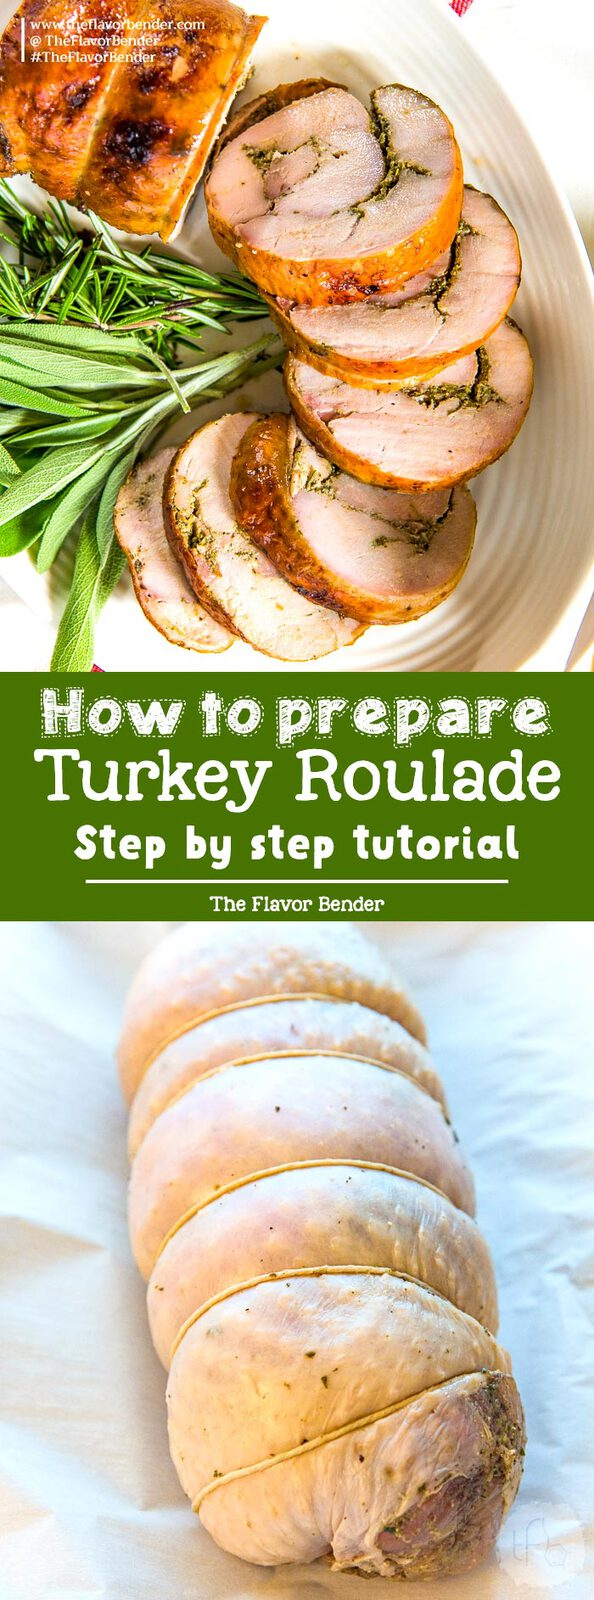 Learn how to make a Turkey Roulade - Step by step instruction on how to prepare turkey breast into a boneless roulade that is perfect for Thanksgiving! #Thanksgiving #TurkeyRecipes #ThanksgivingRecipes #TurkeyBreast